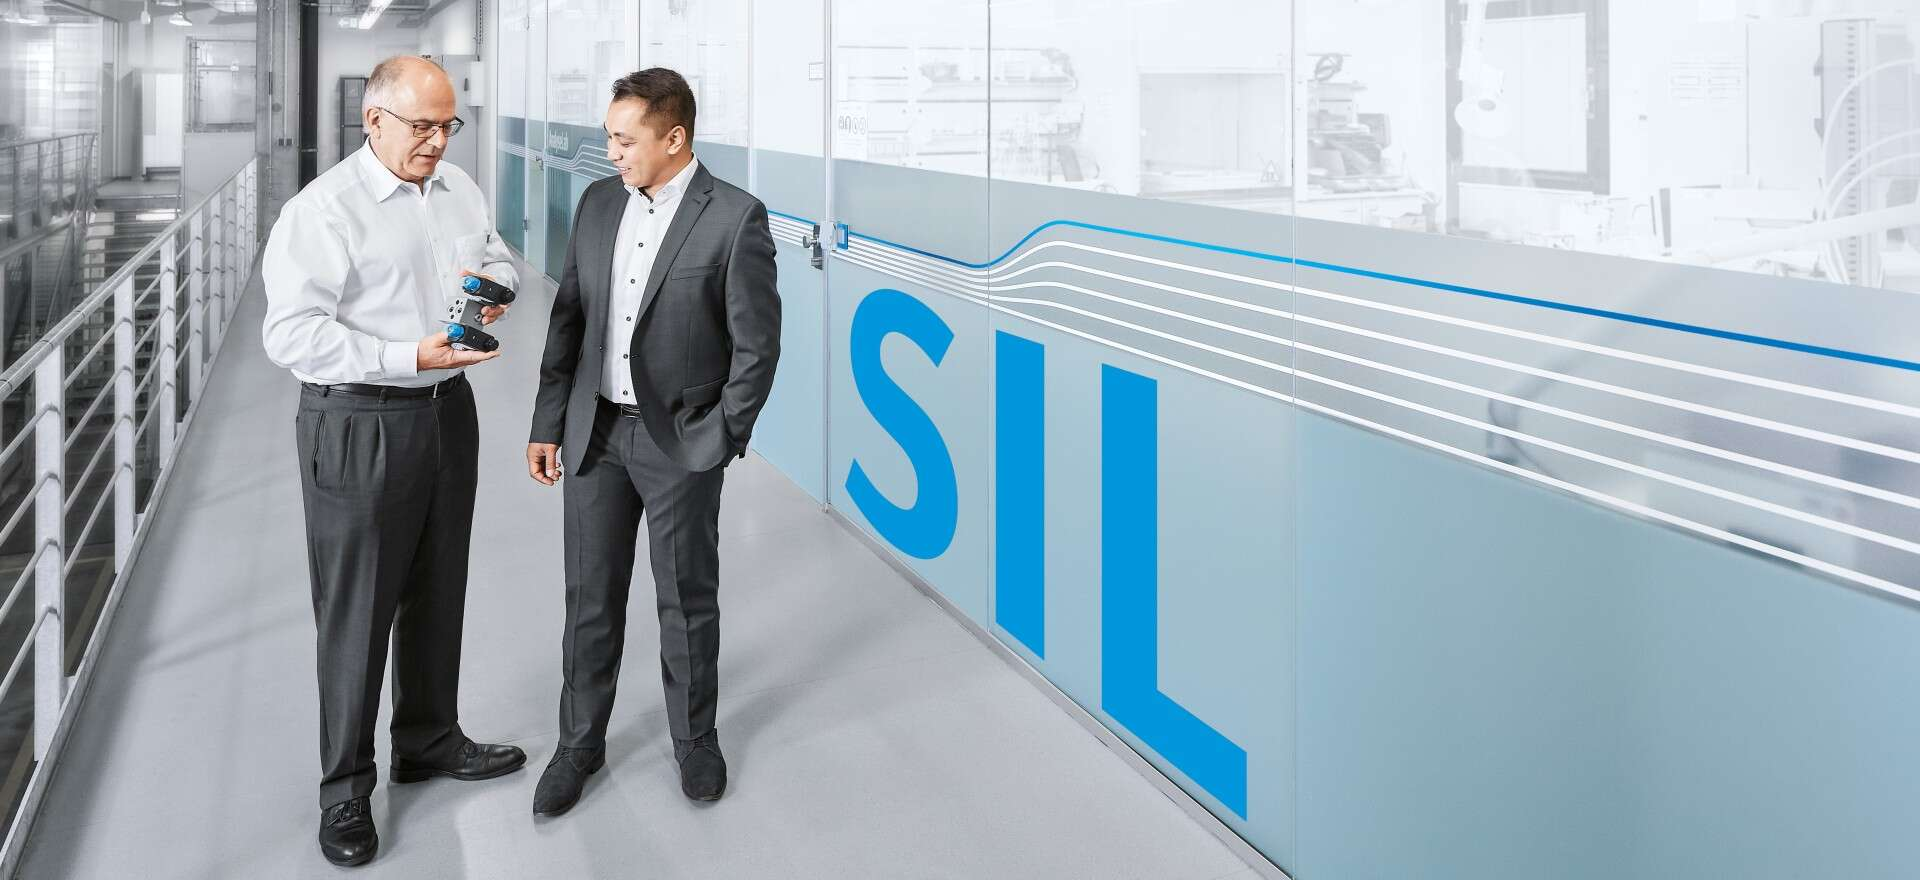 SIL in the chemical industry